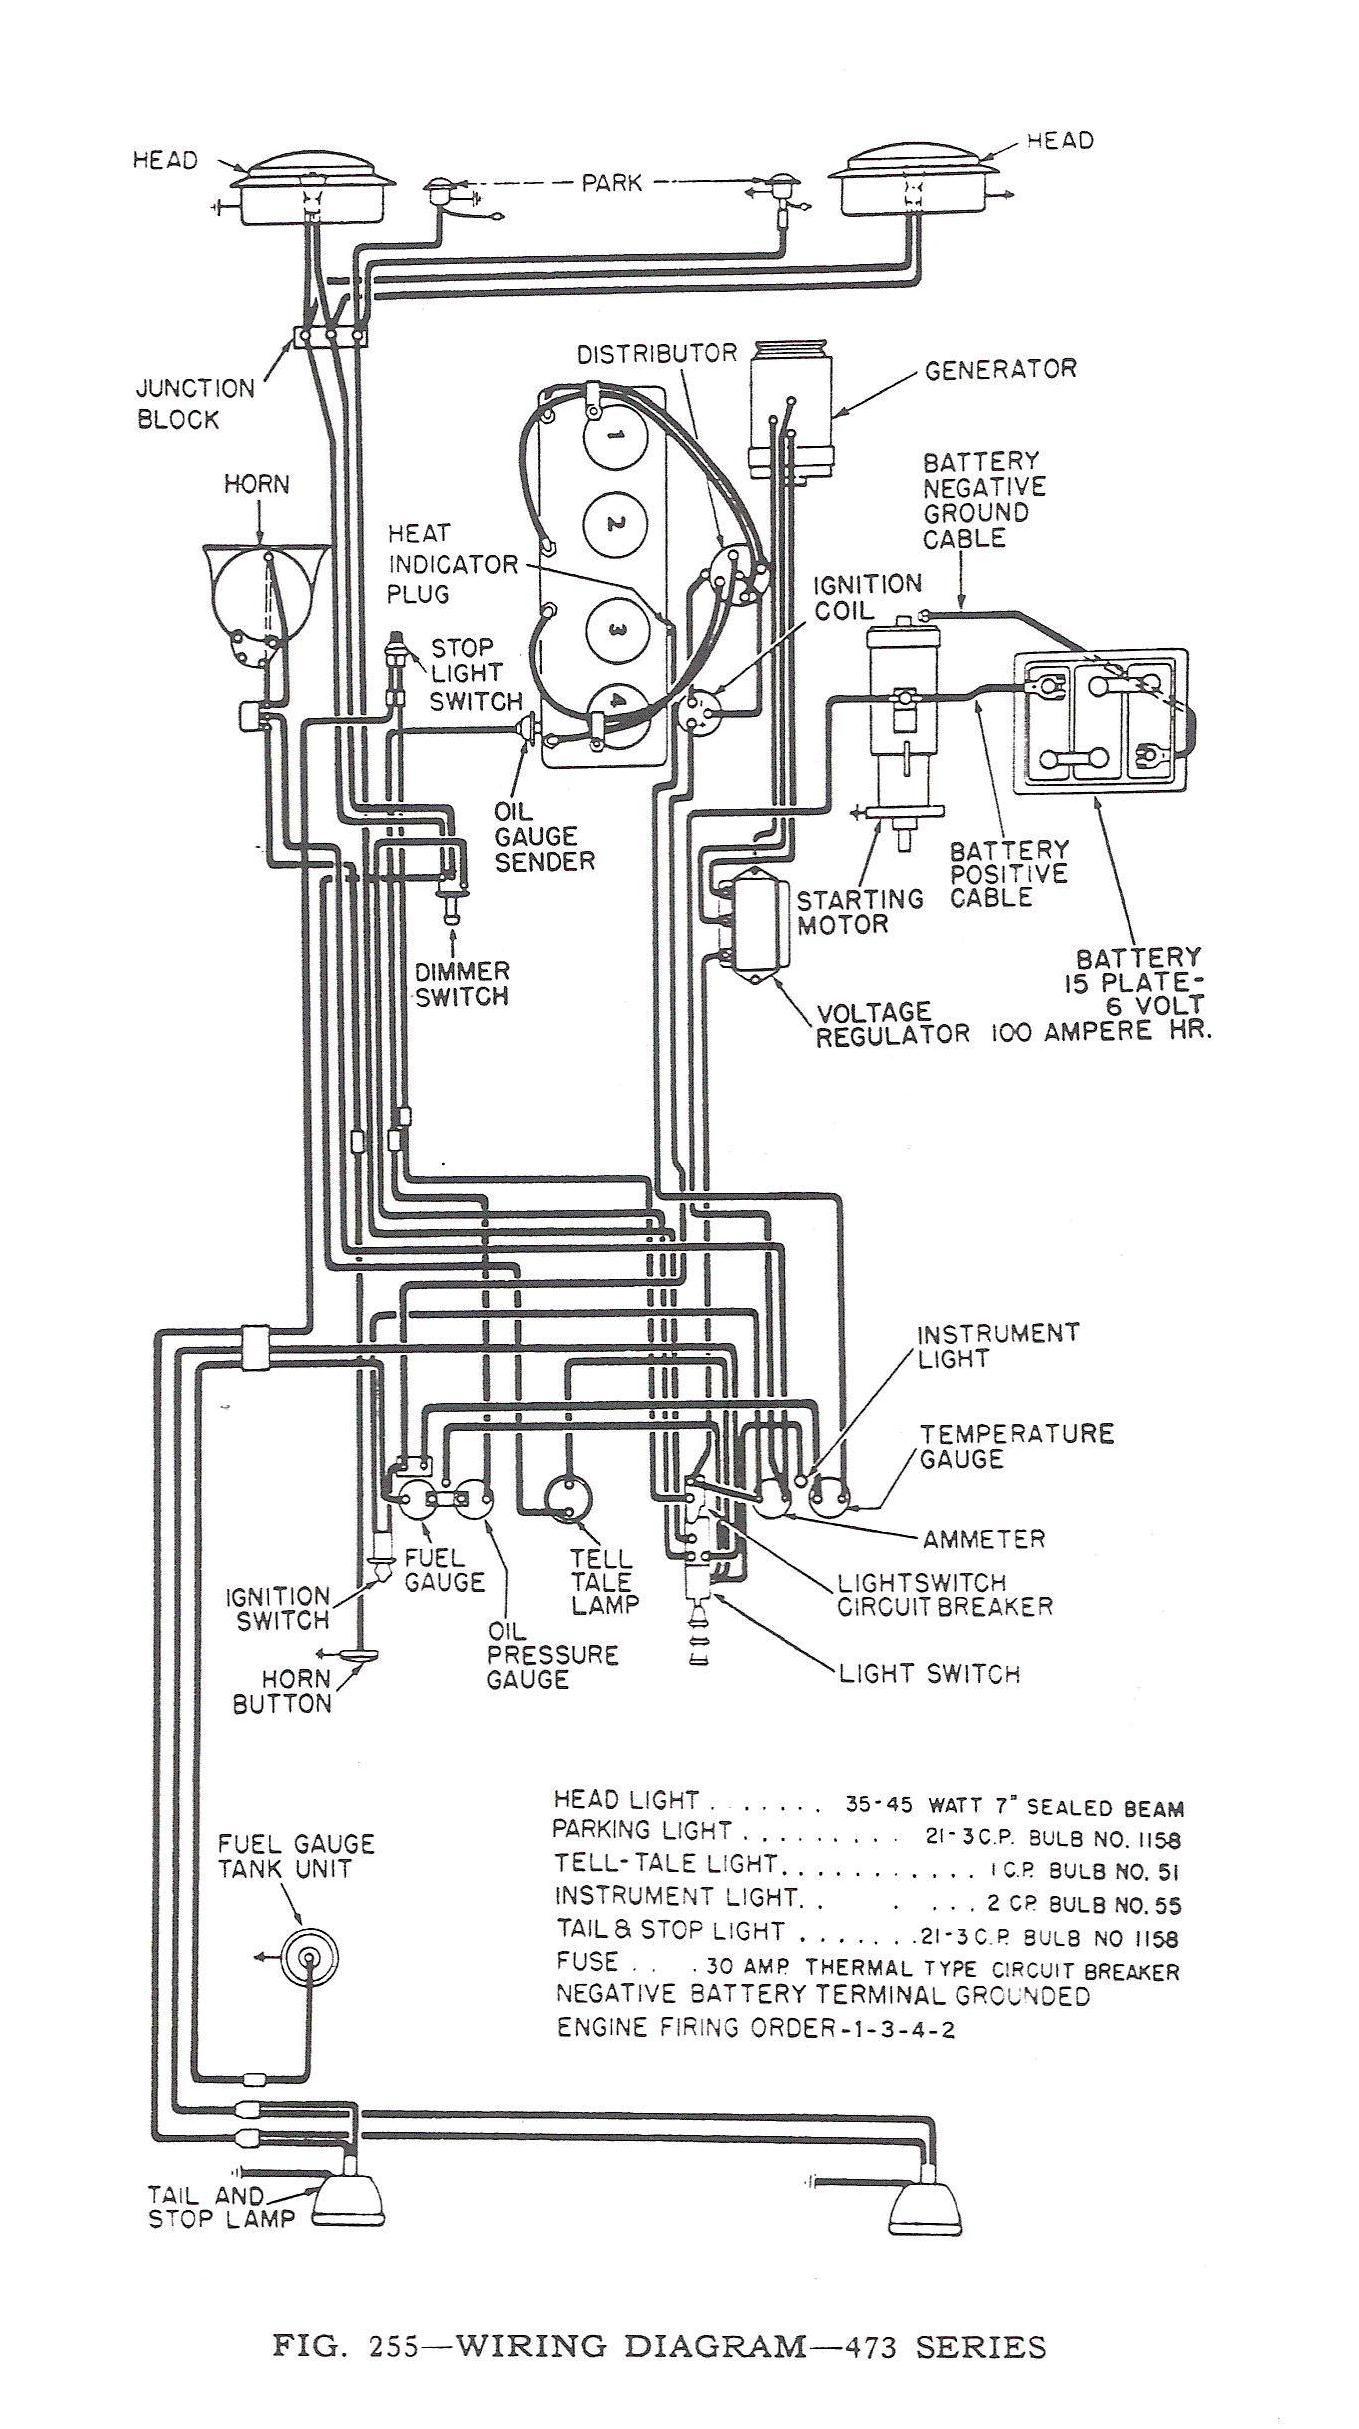 1952 jeep series 473 wiring diagrams  Google Search